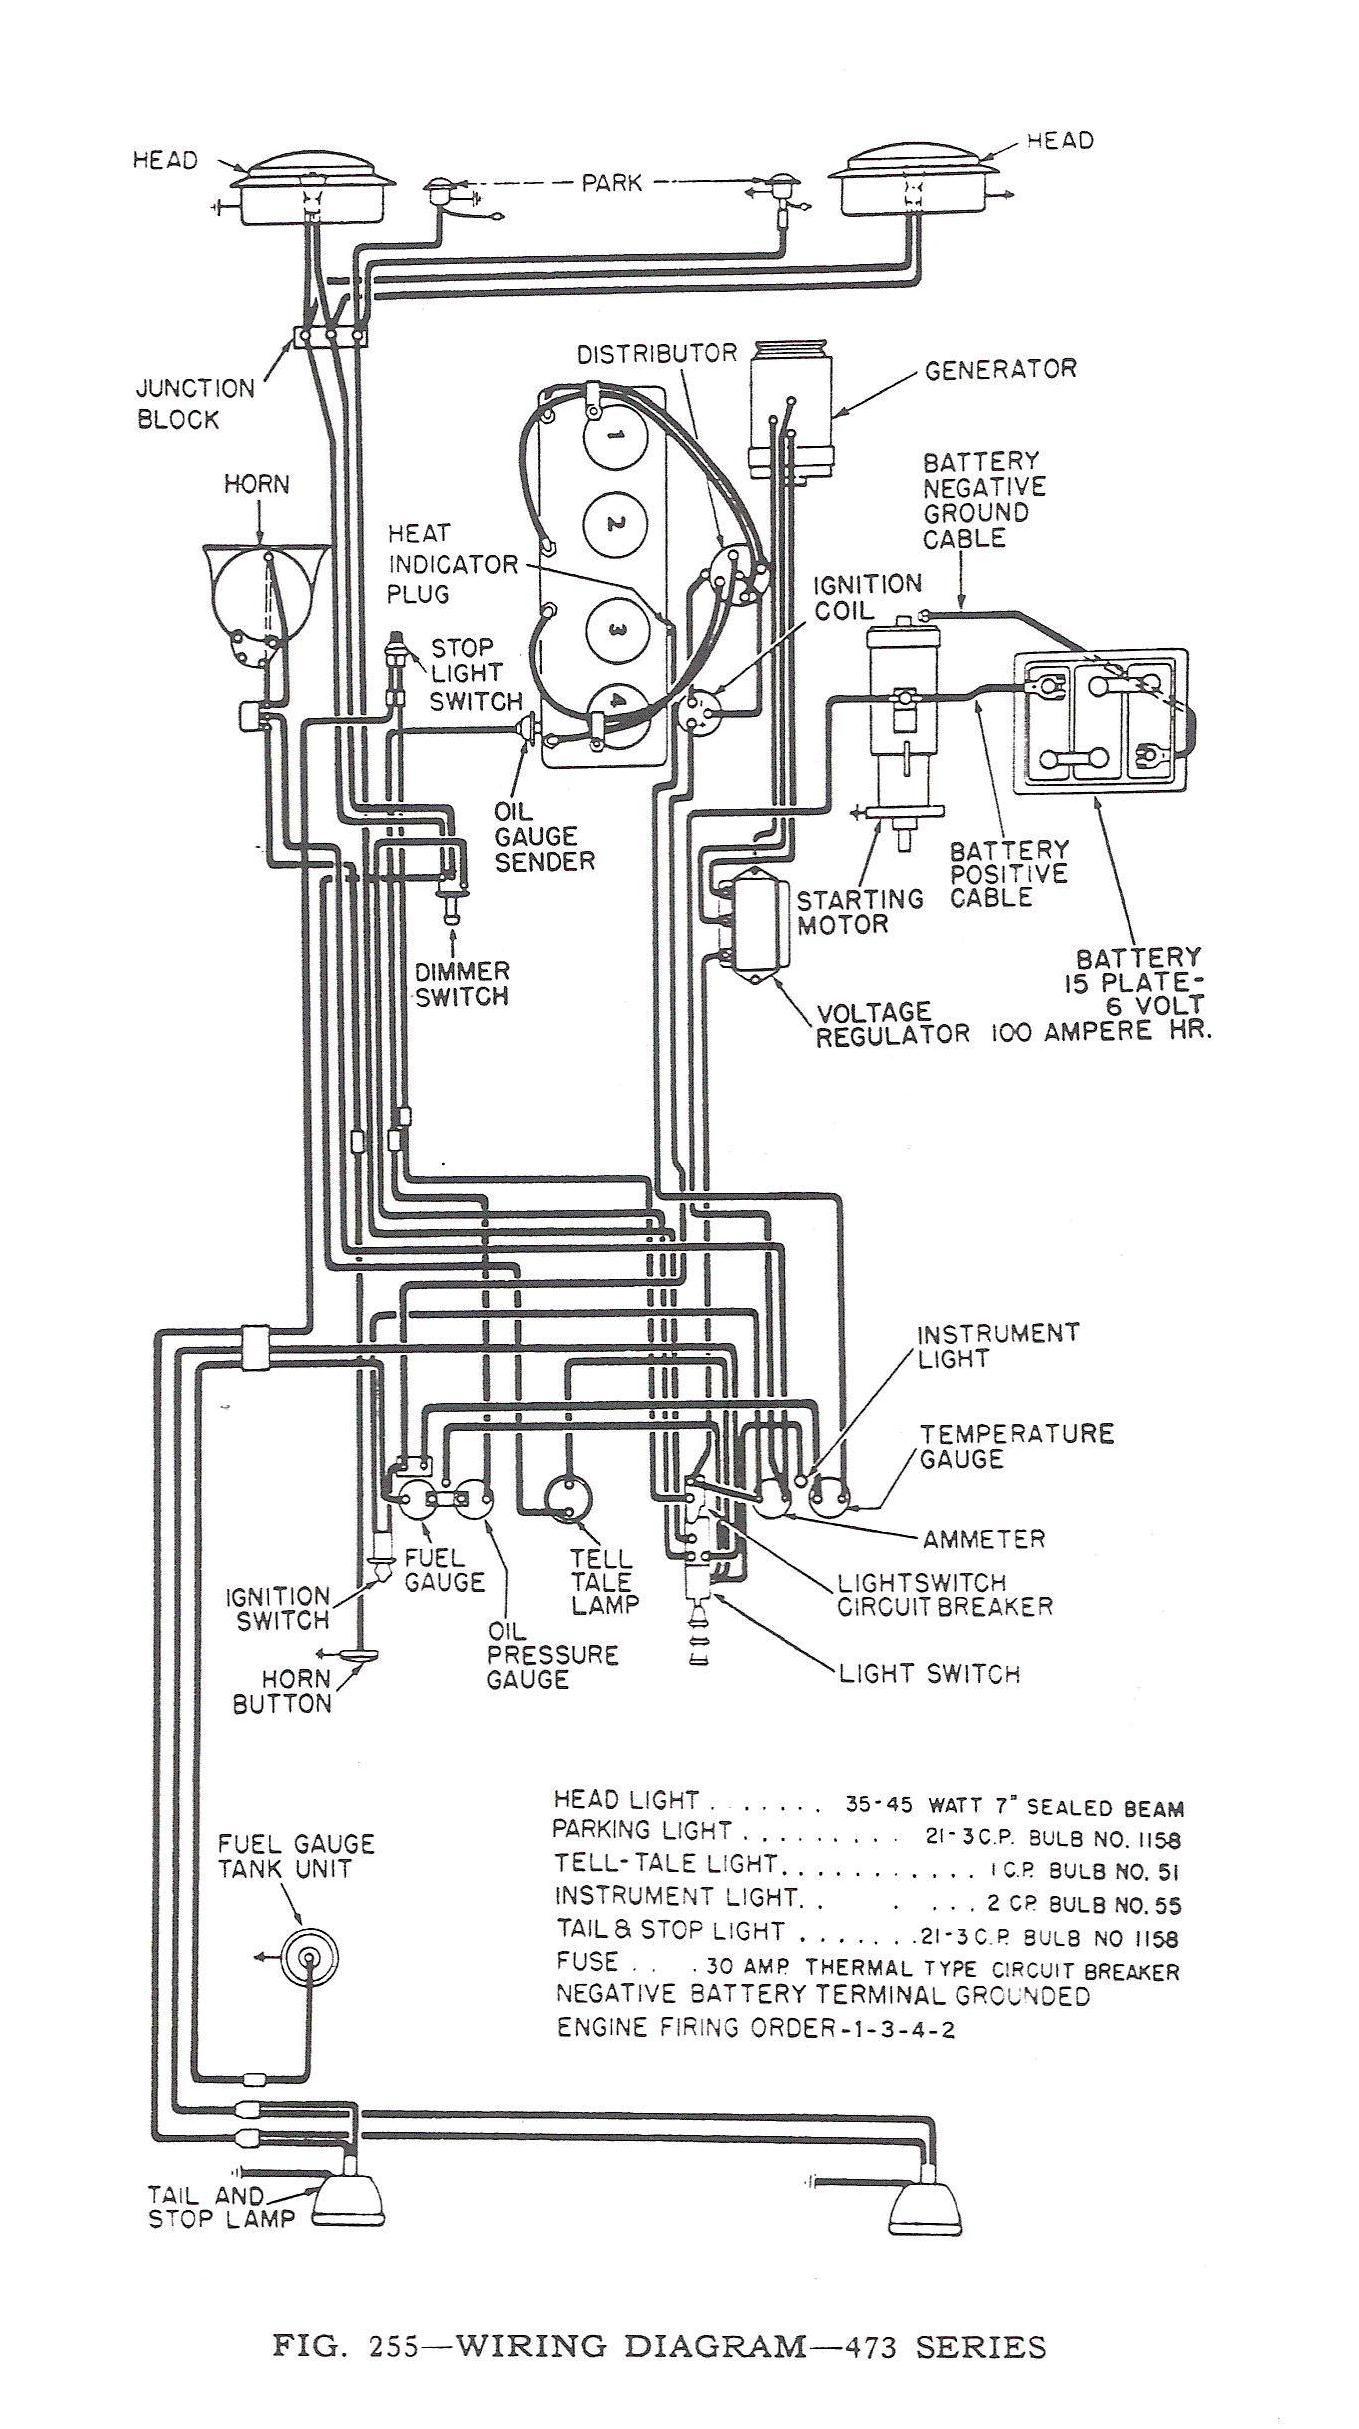 1952 jeep series 473 wiring diagrams  Google Search